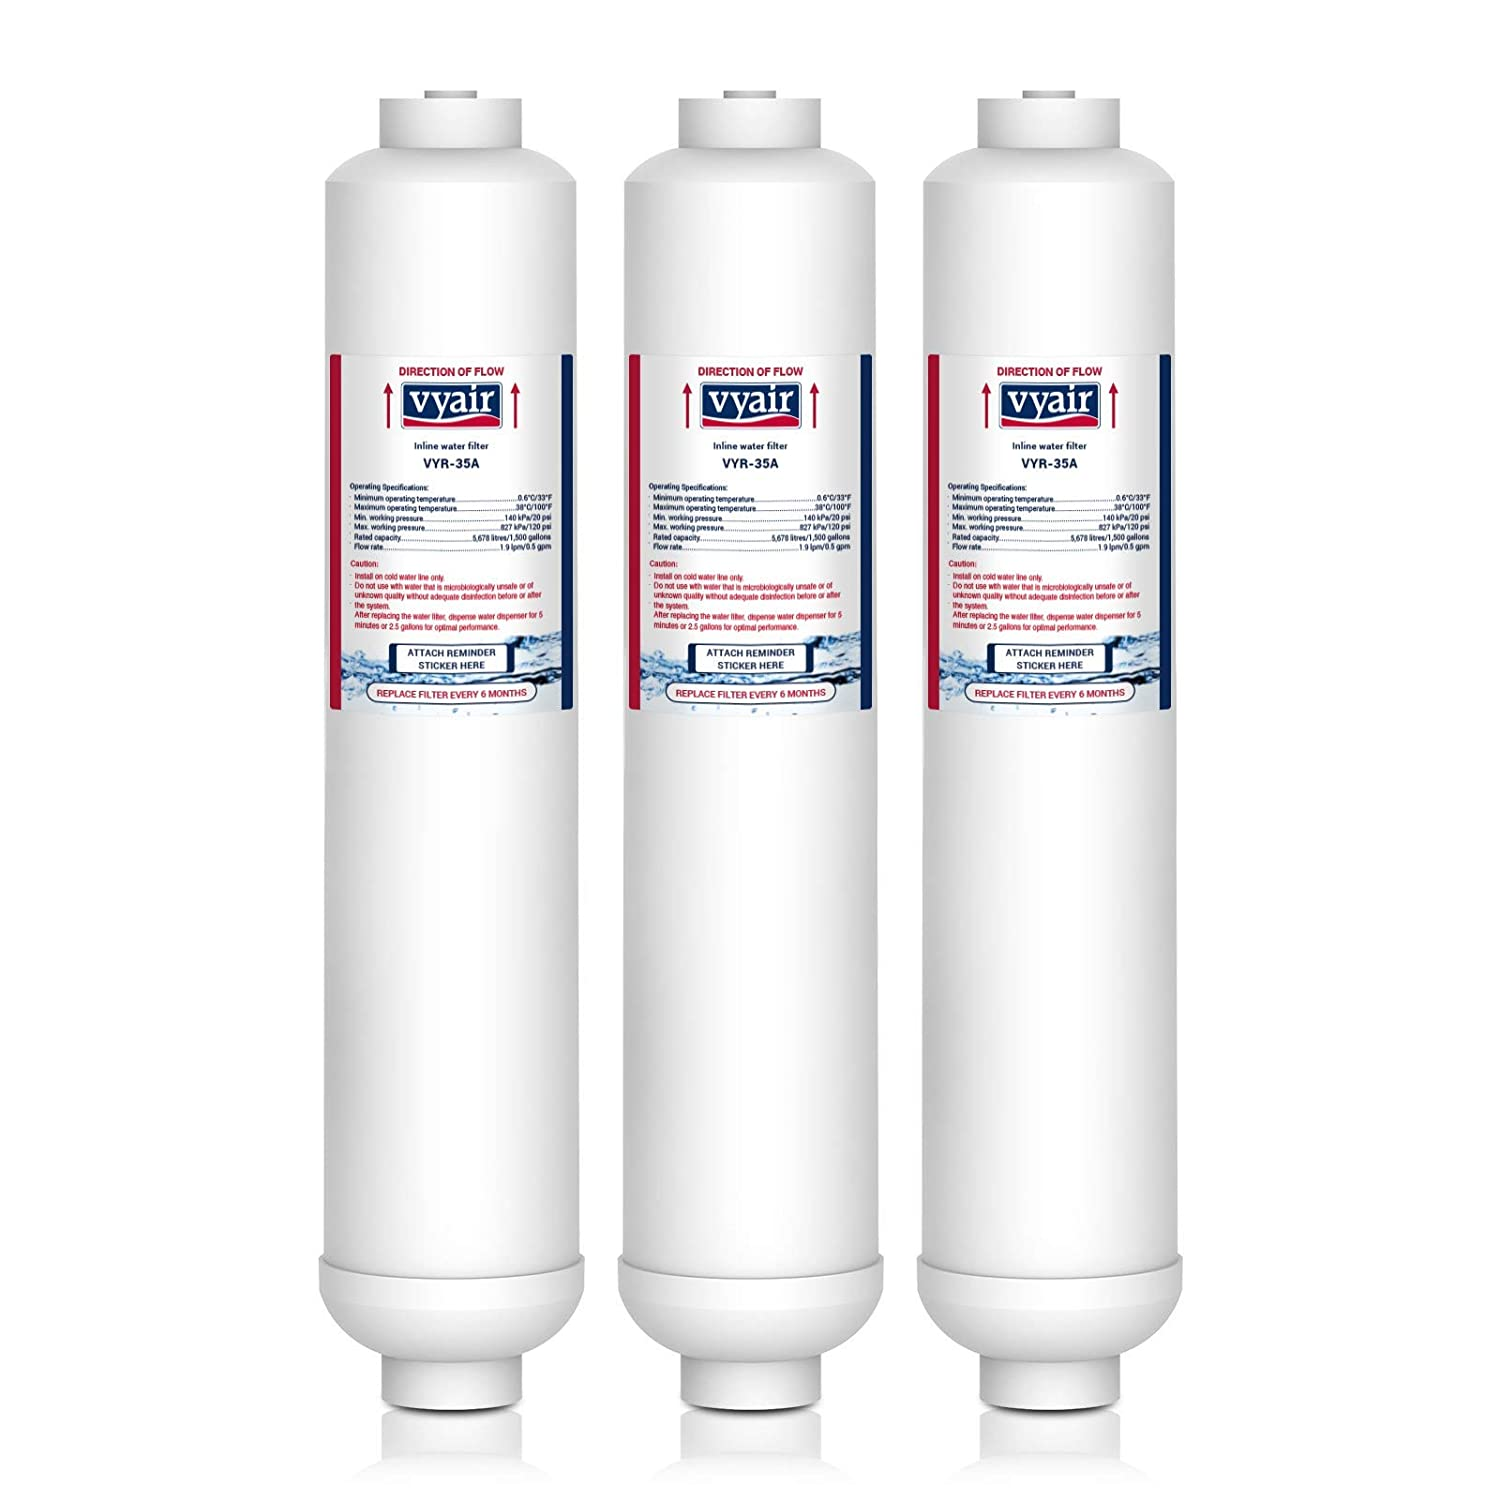 3 x VYAIR VYR-35A Ice & Water Refrigerator Filter to fit LG 3650JD8050A, 3890JC2990A, 5231JA2003B, 5231JA2010A, 5231JA2010B, 5231JA2010C, 5231JA2012A, BL-9303, BL-9808, Composition Filter, DA2010CB, K32010CB